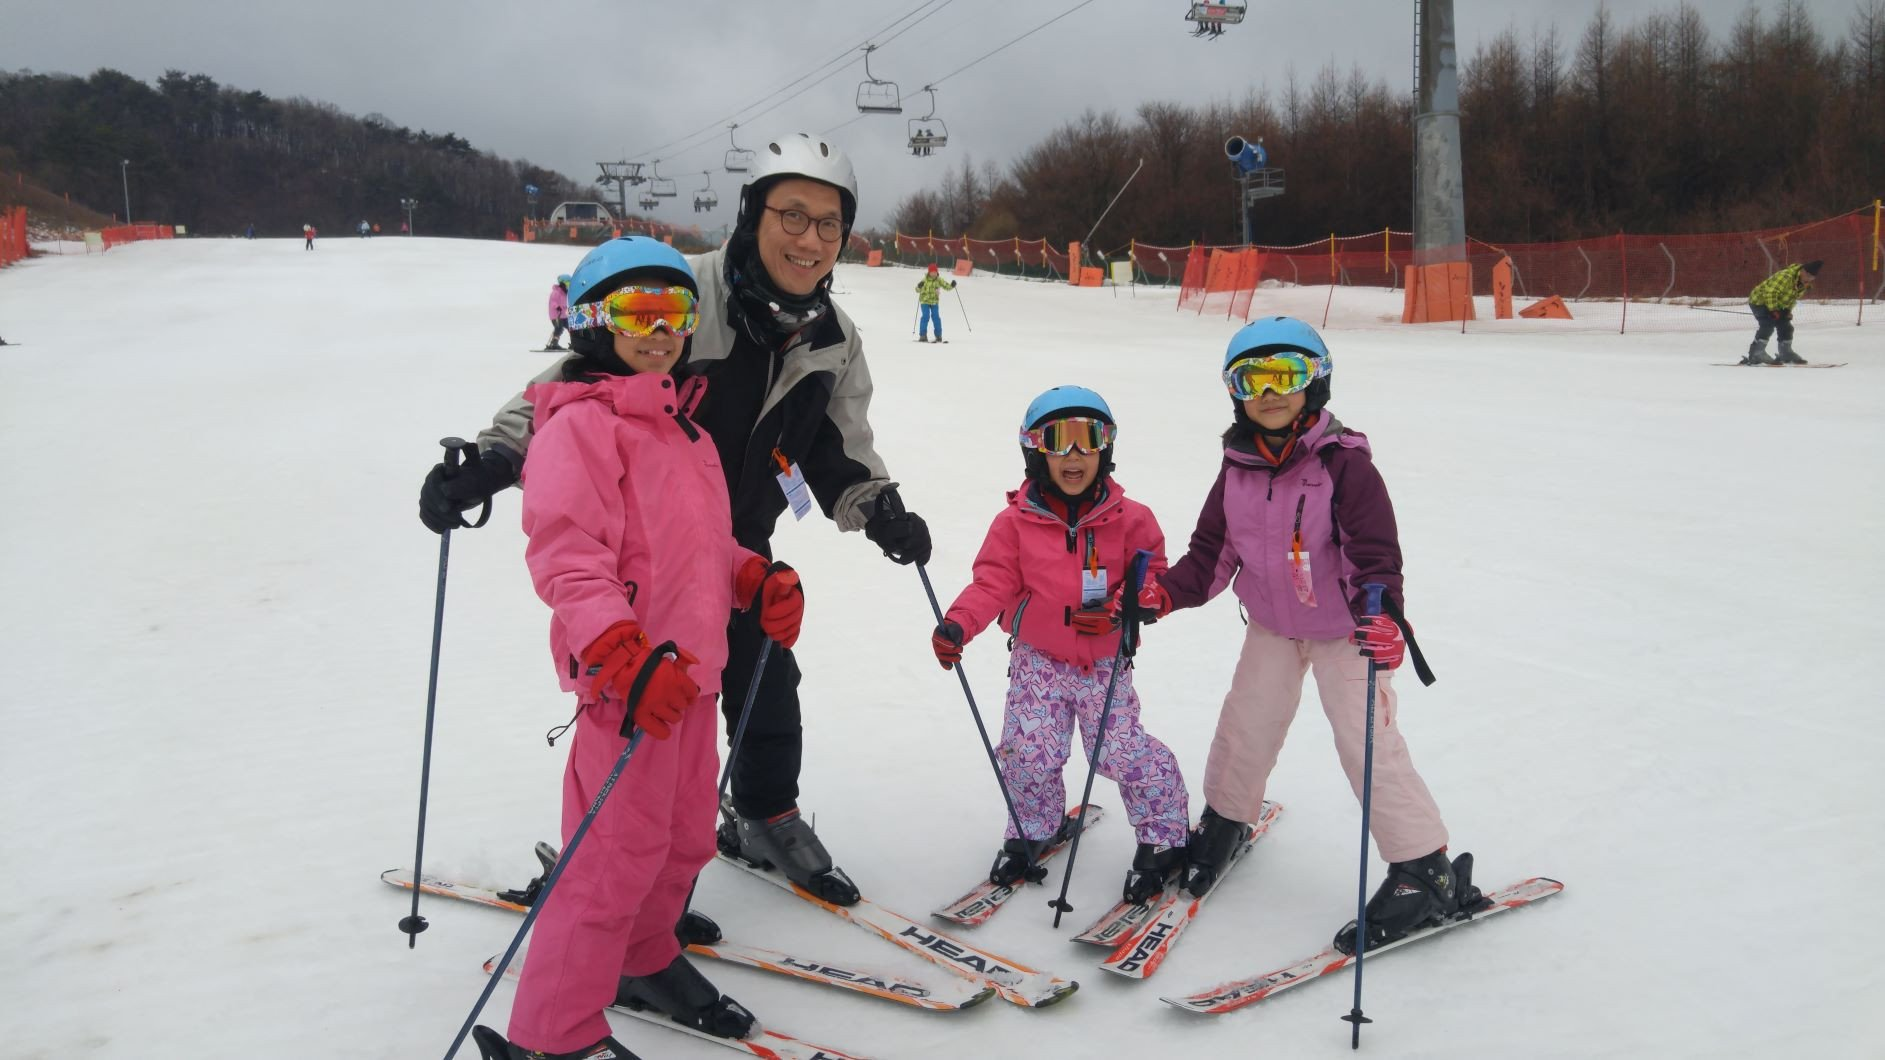 Private Ski Lesson at vivaldi park